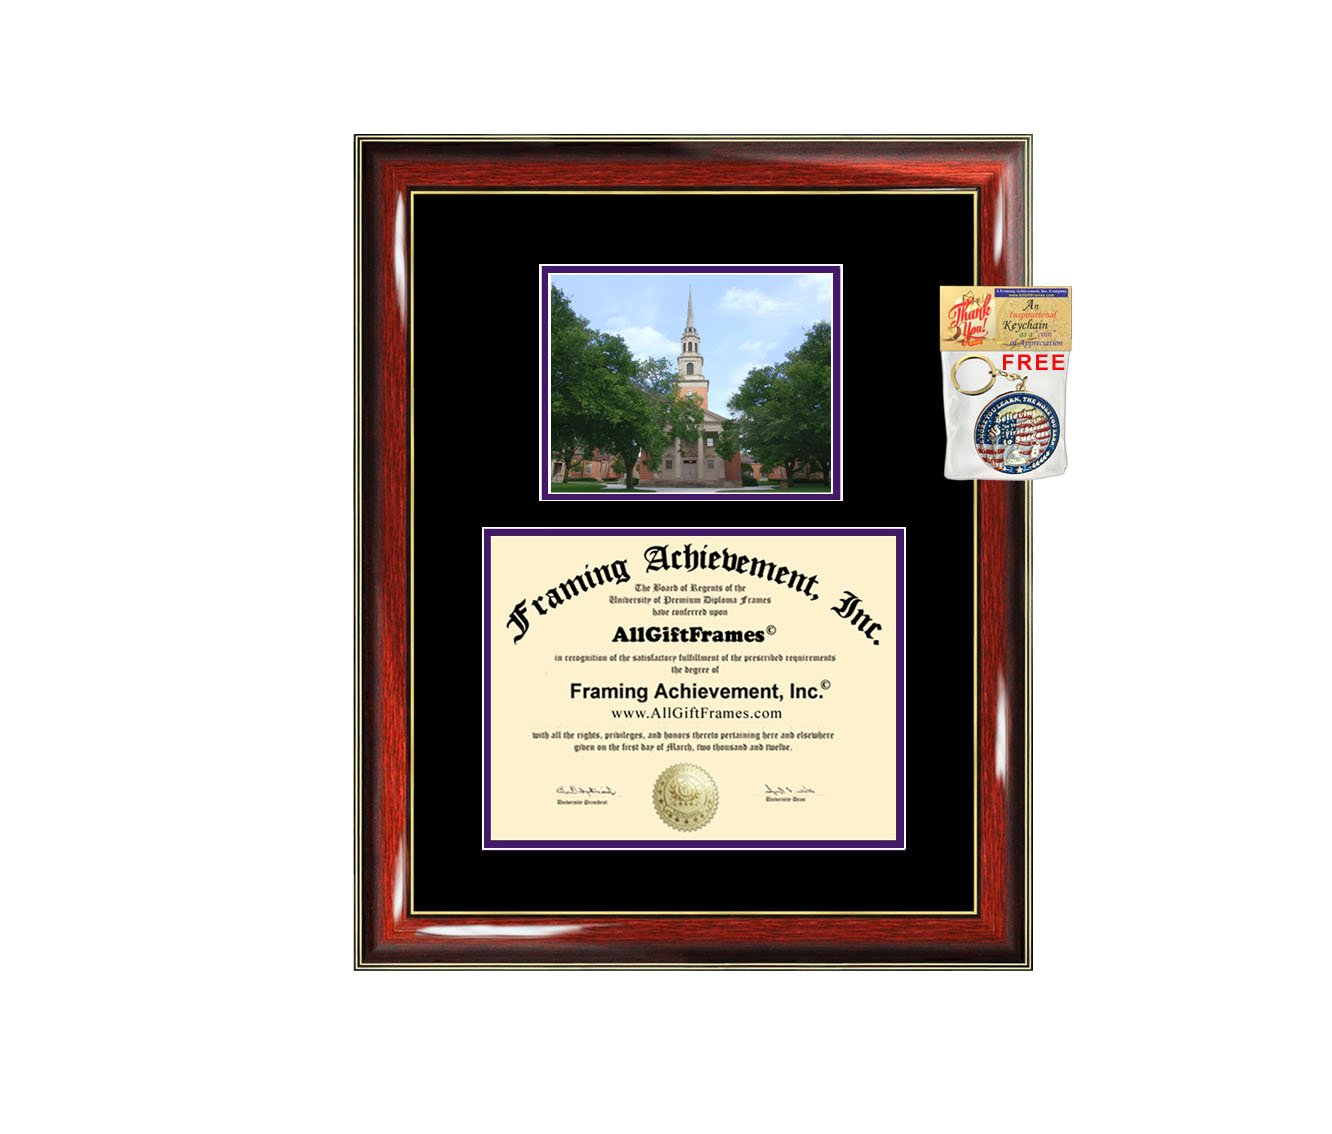 Texas Christian University Diploma Frame TCU Graduation College Degree Campus Photo Double Mat Document Holder Certificate Plaque Graduate Gift by AllGiftFrames